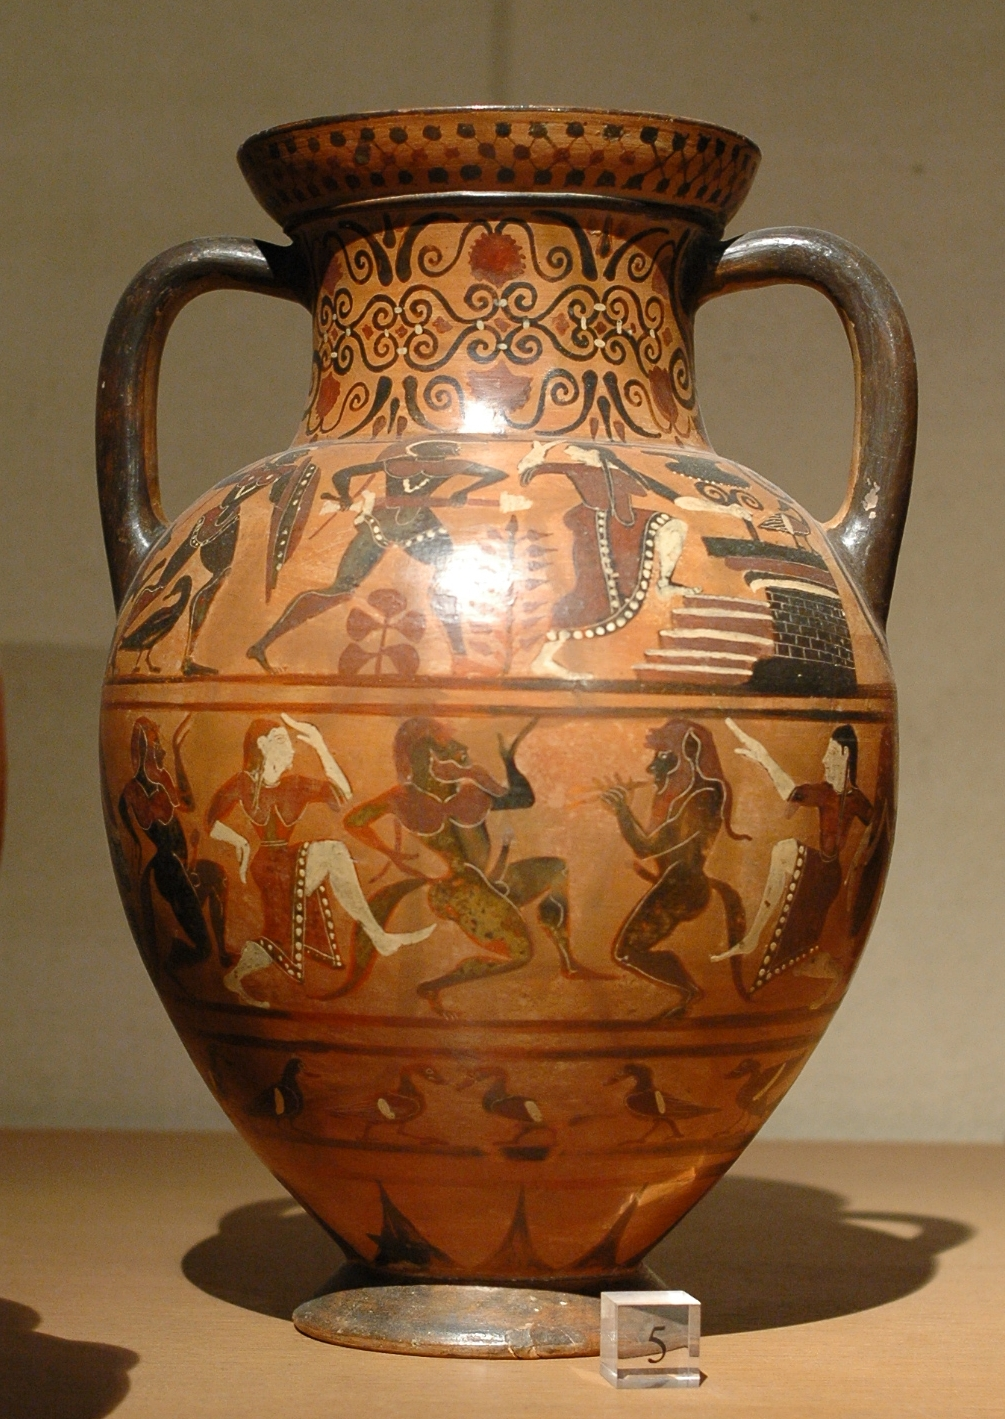 http://upload.wikimedia.org/wikipedia/commons/a/a7/Etruscan_amphora_Louvre_E703_side_B.jpg